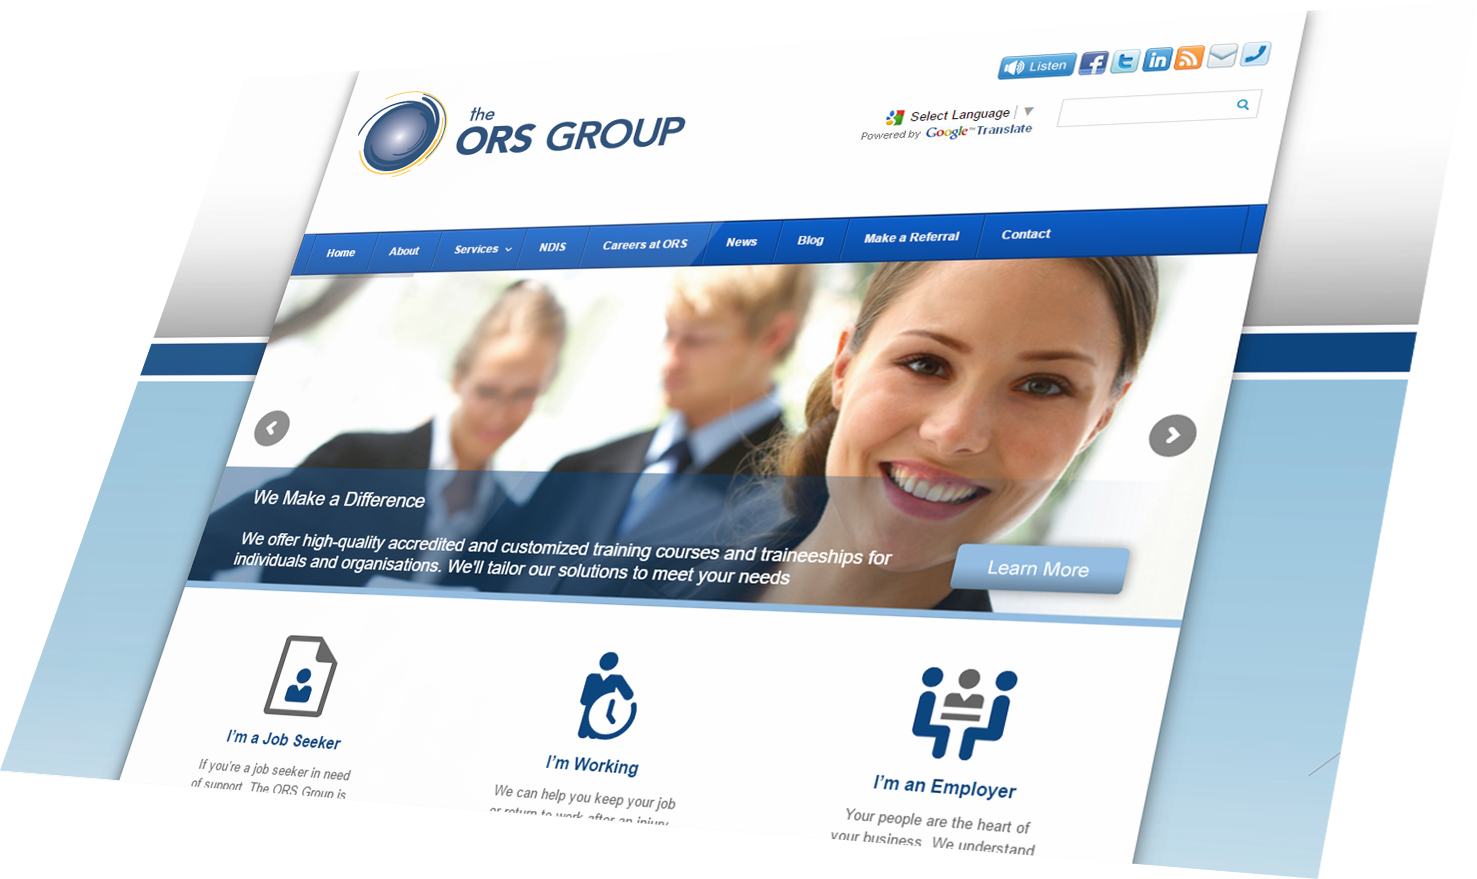 The ORS Group